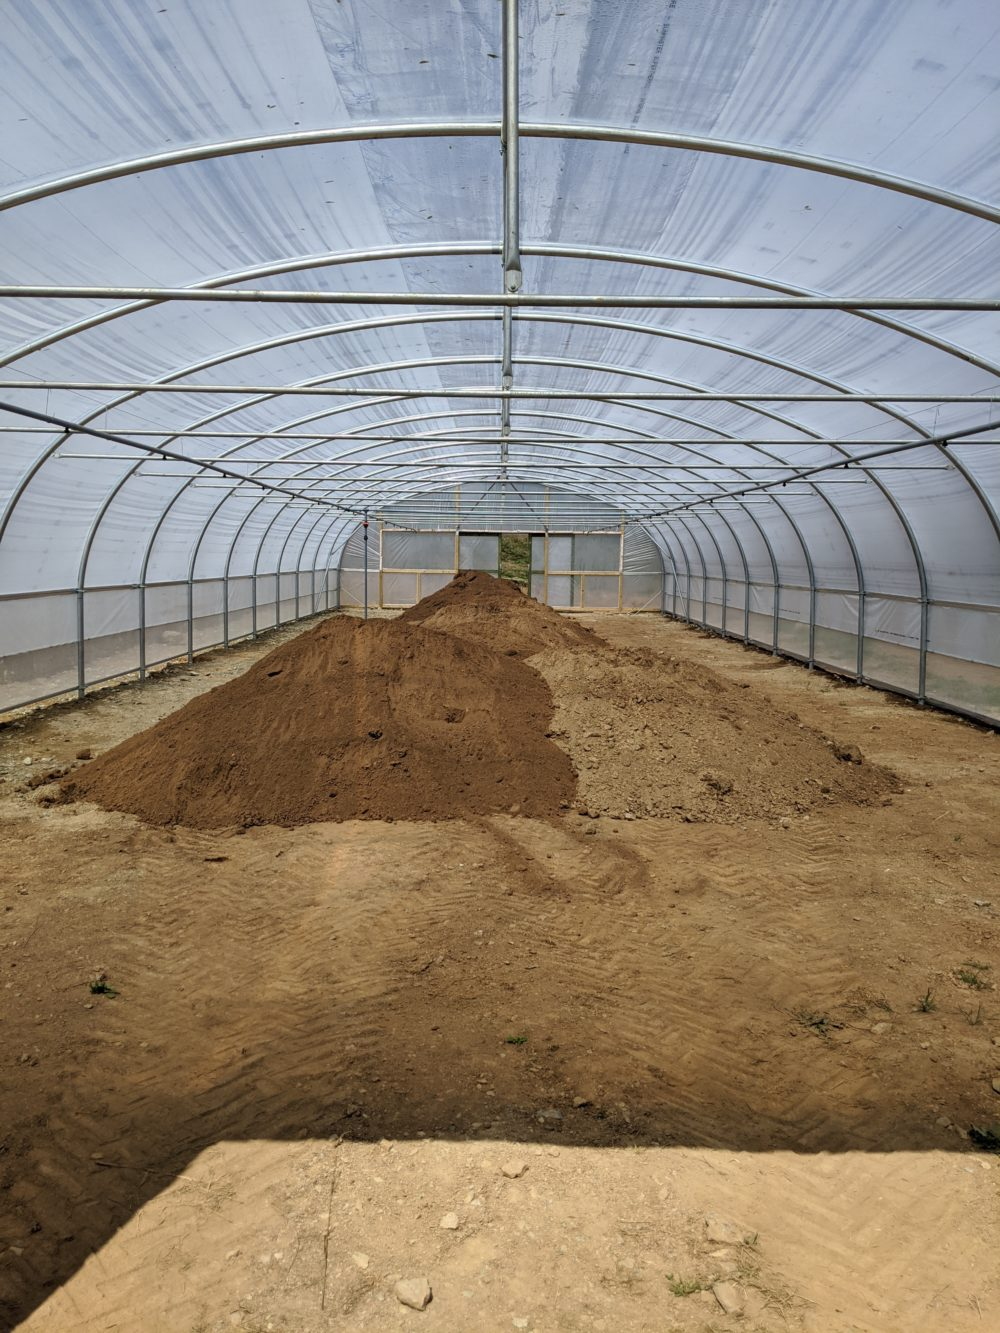 Polytunnel structures complete, now time to fill them!